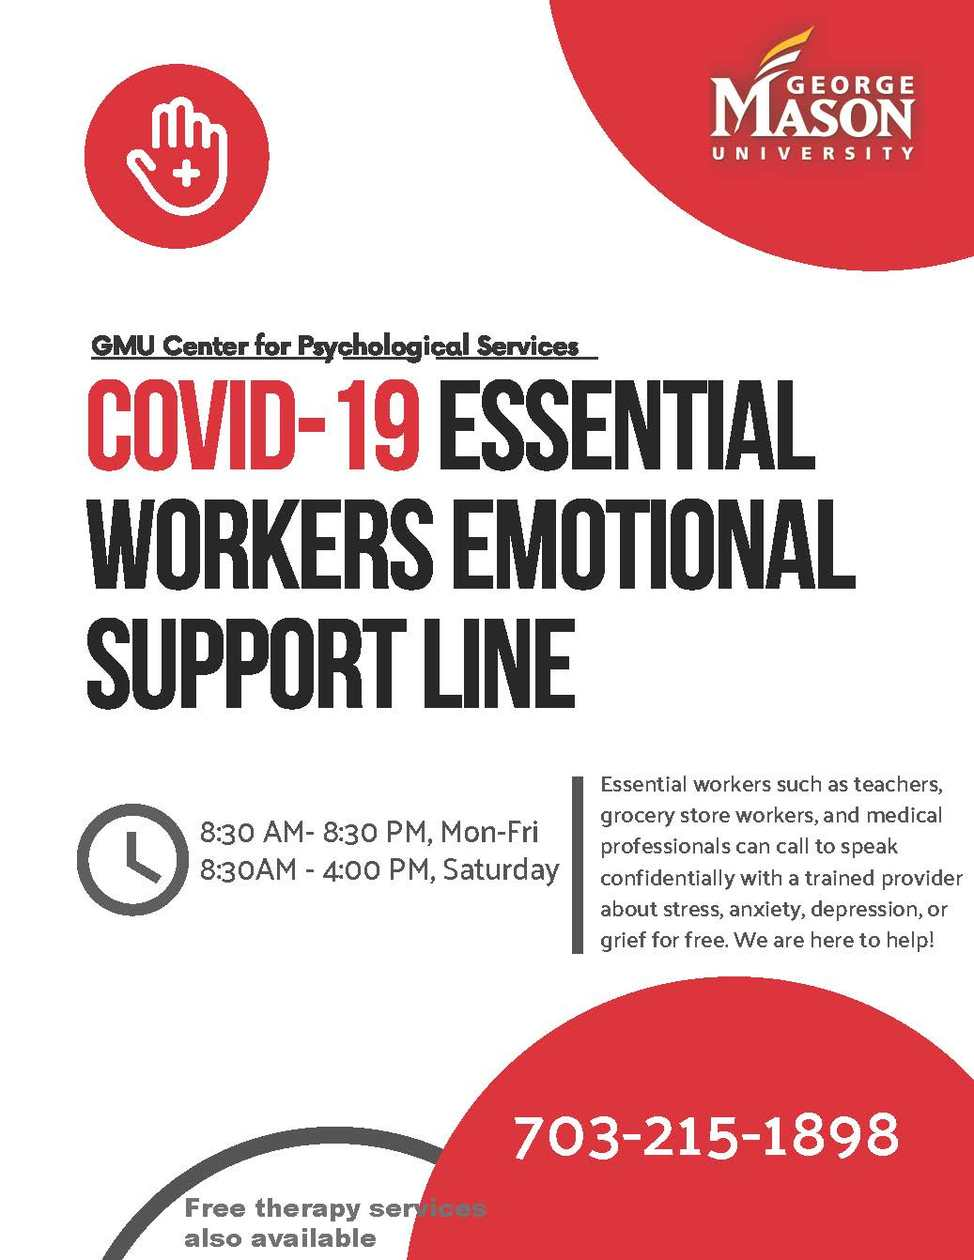 George Mason University Center for Psychological Services offers free mental health support to essential workers